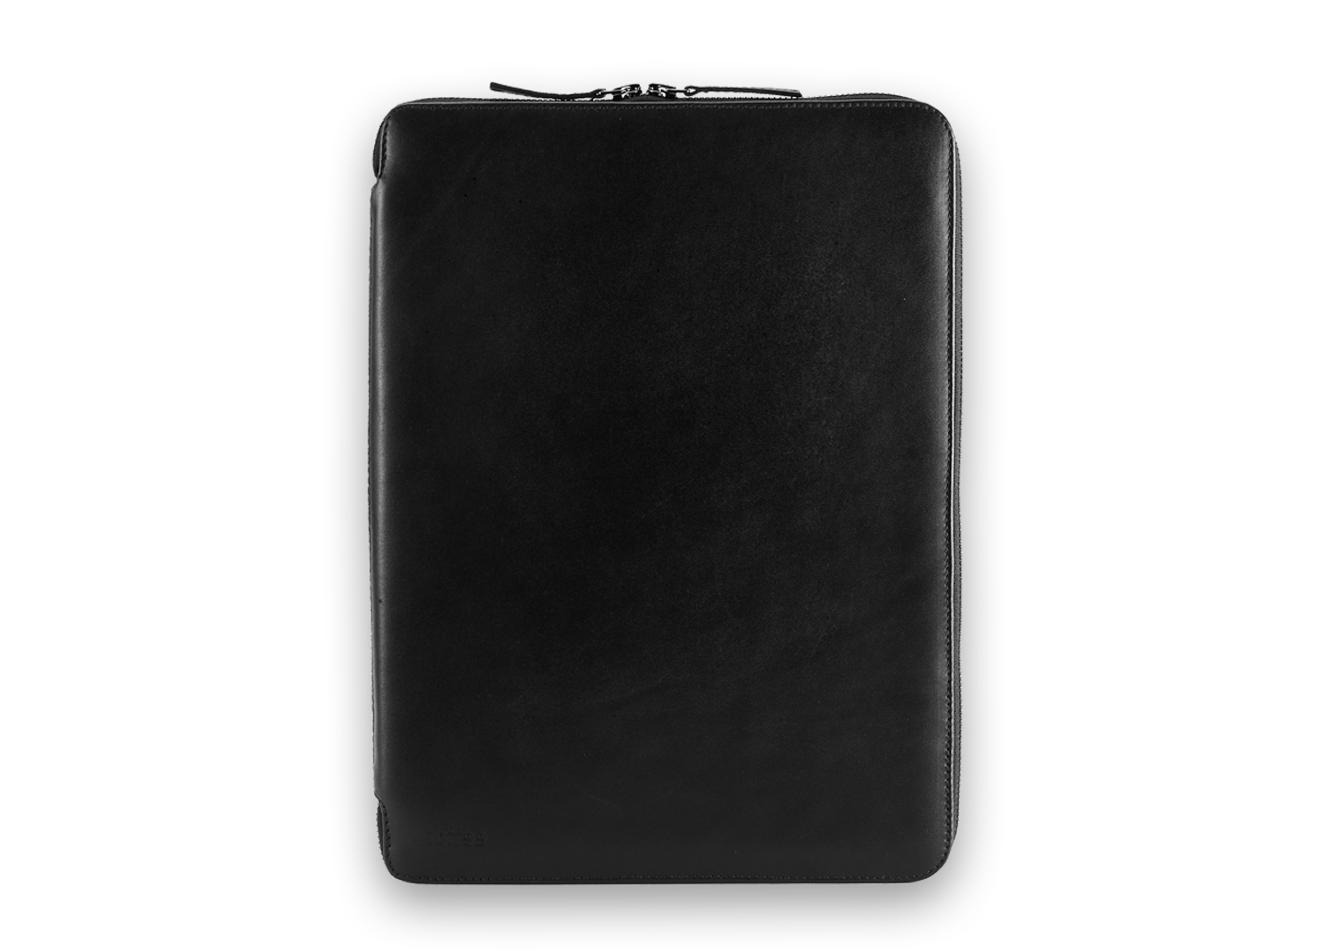 Toffee Folio Organiser for iPad